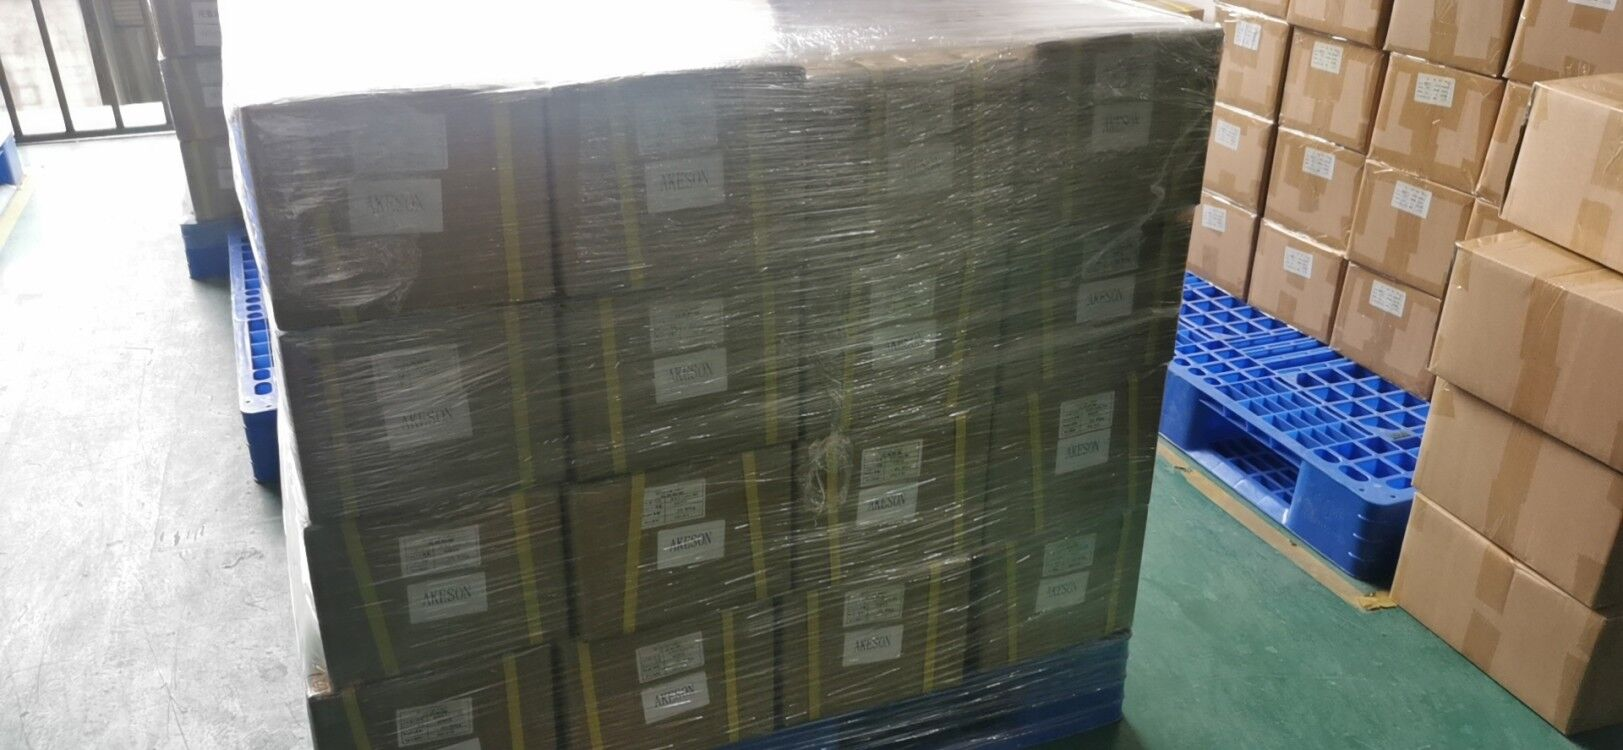 The goods shipped to Australia every week have been packaged